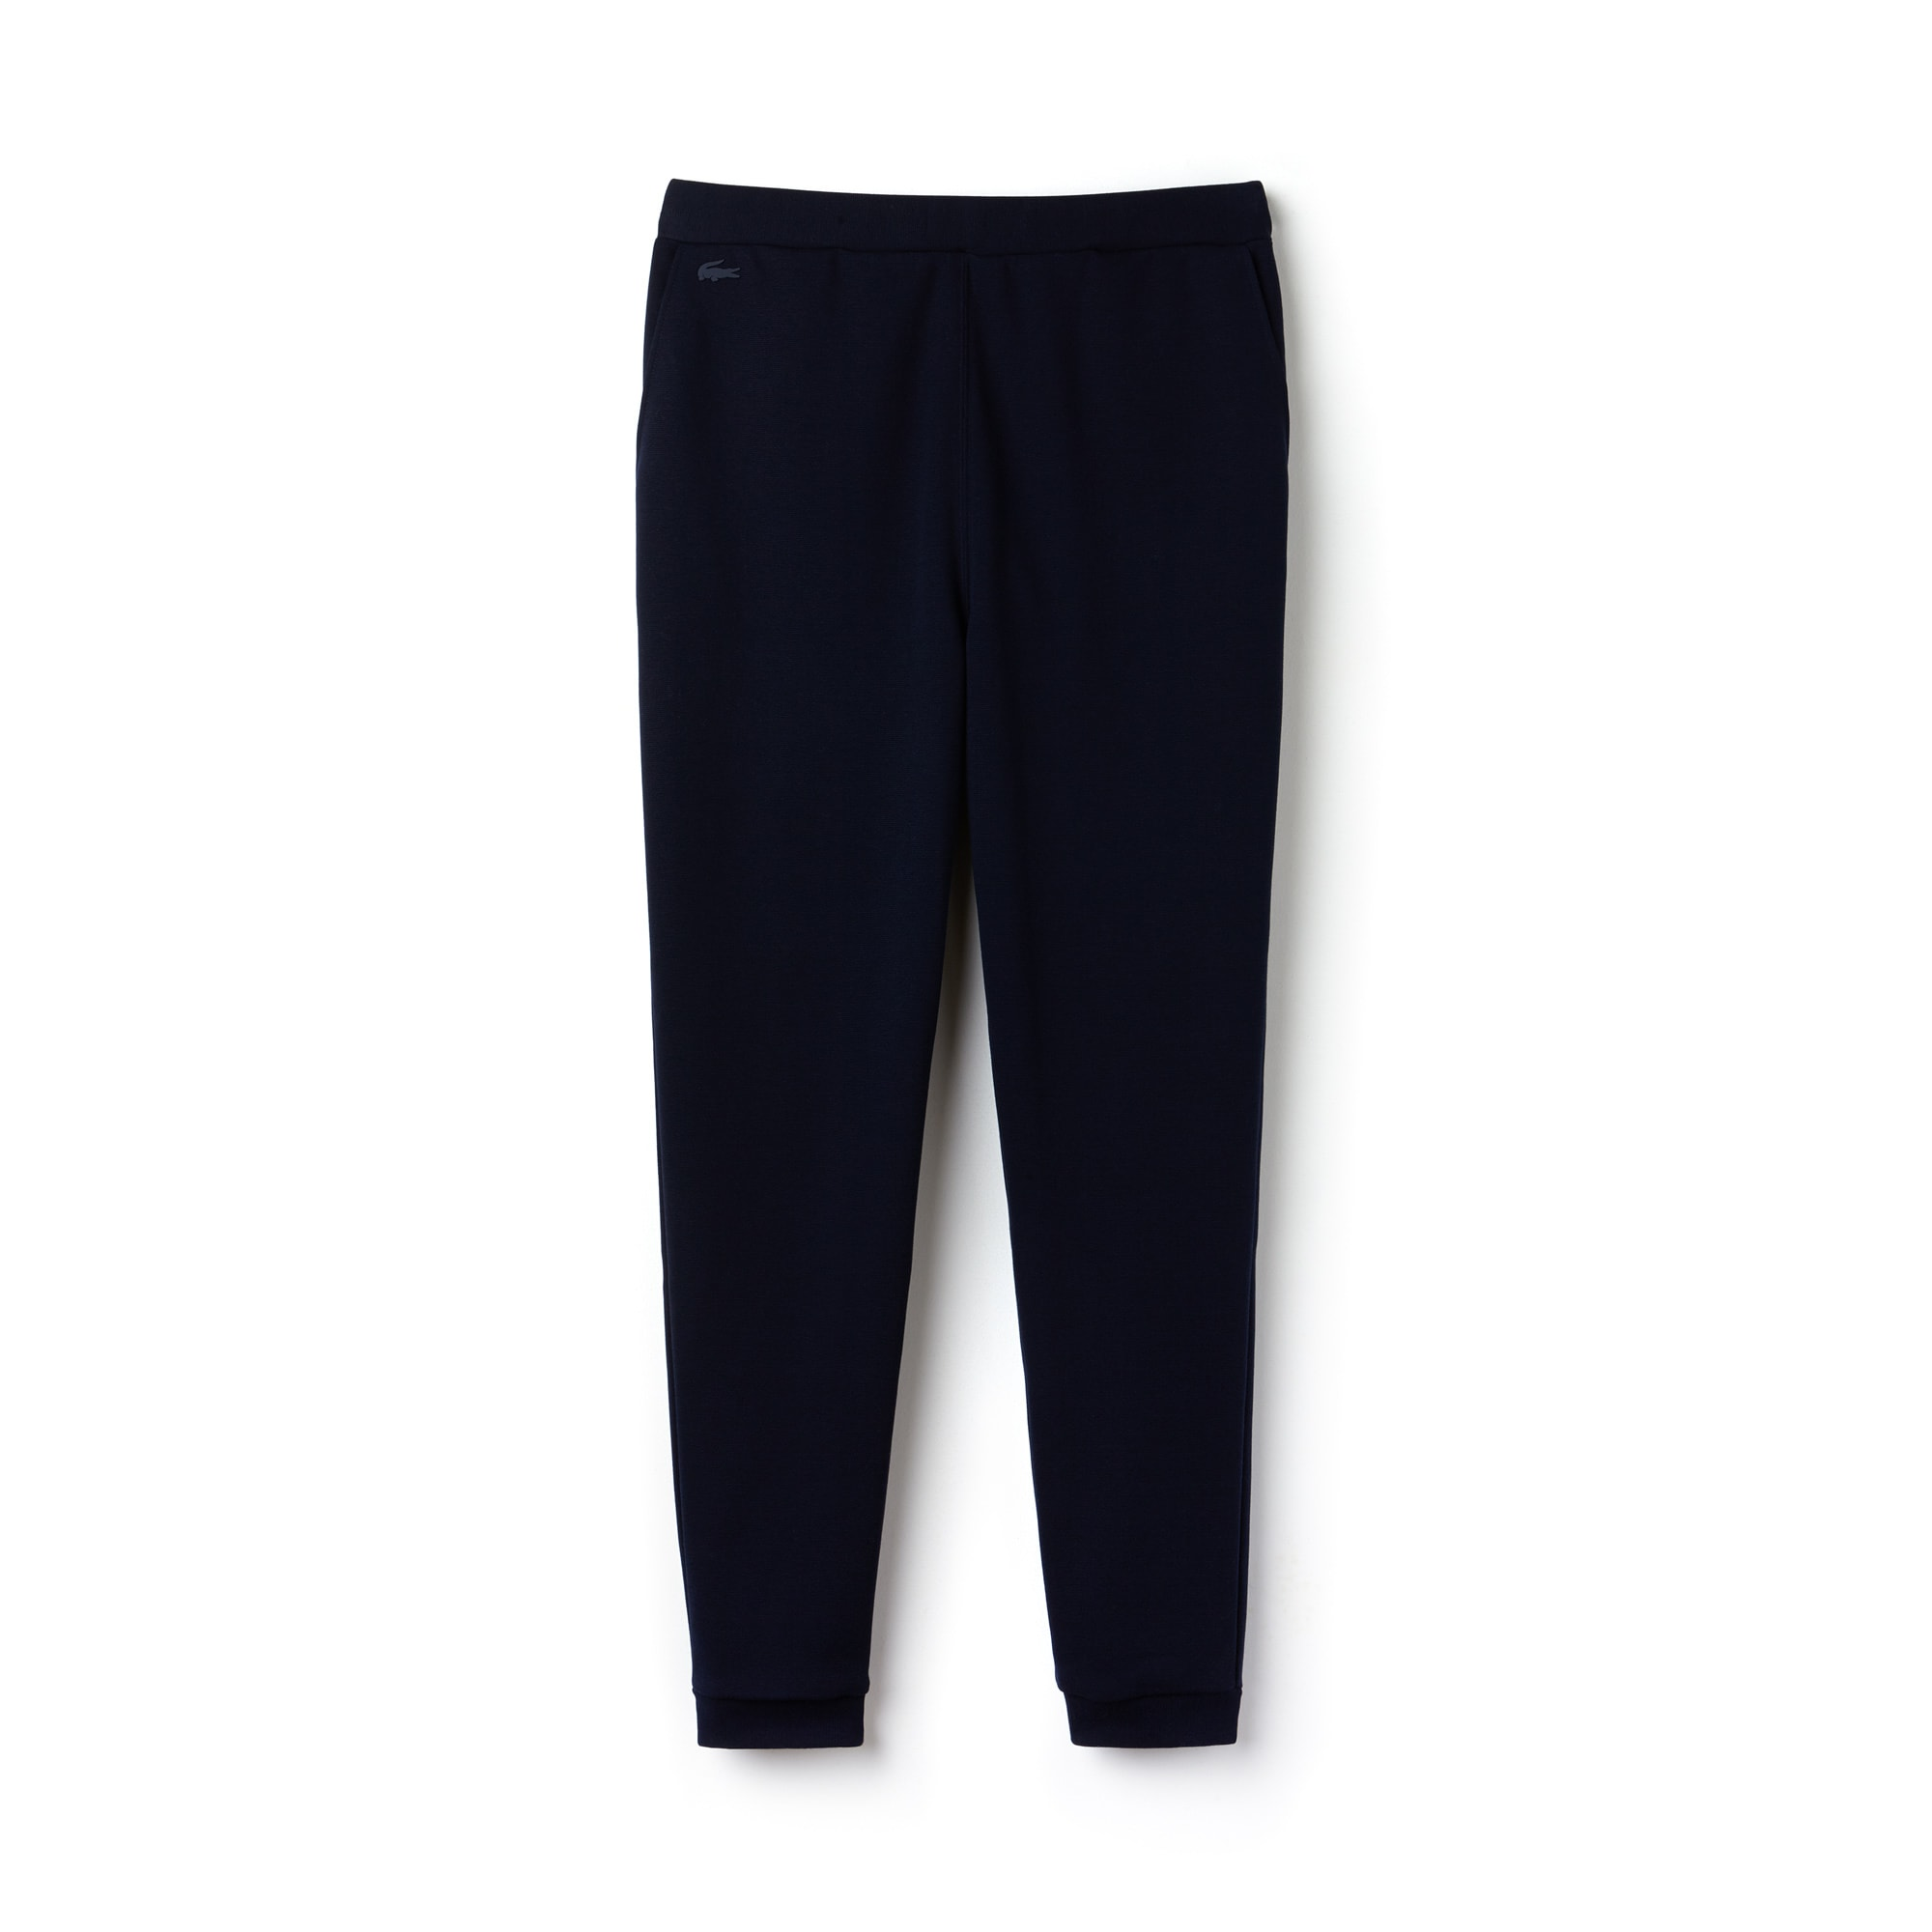 라코스테 조거 팬츠 Lacoste Mens Milano Cotton Urban Jogging Pants,NAVY BLUE